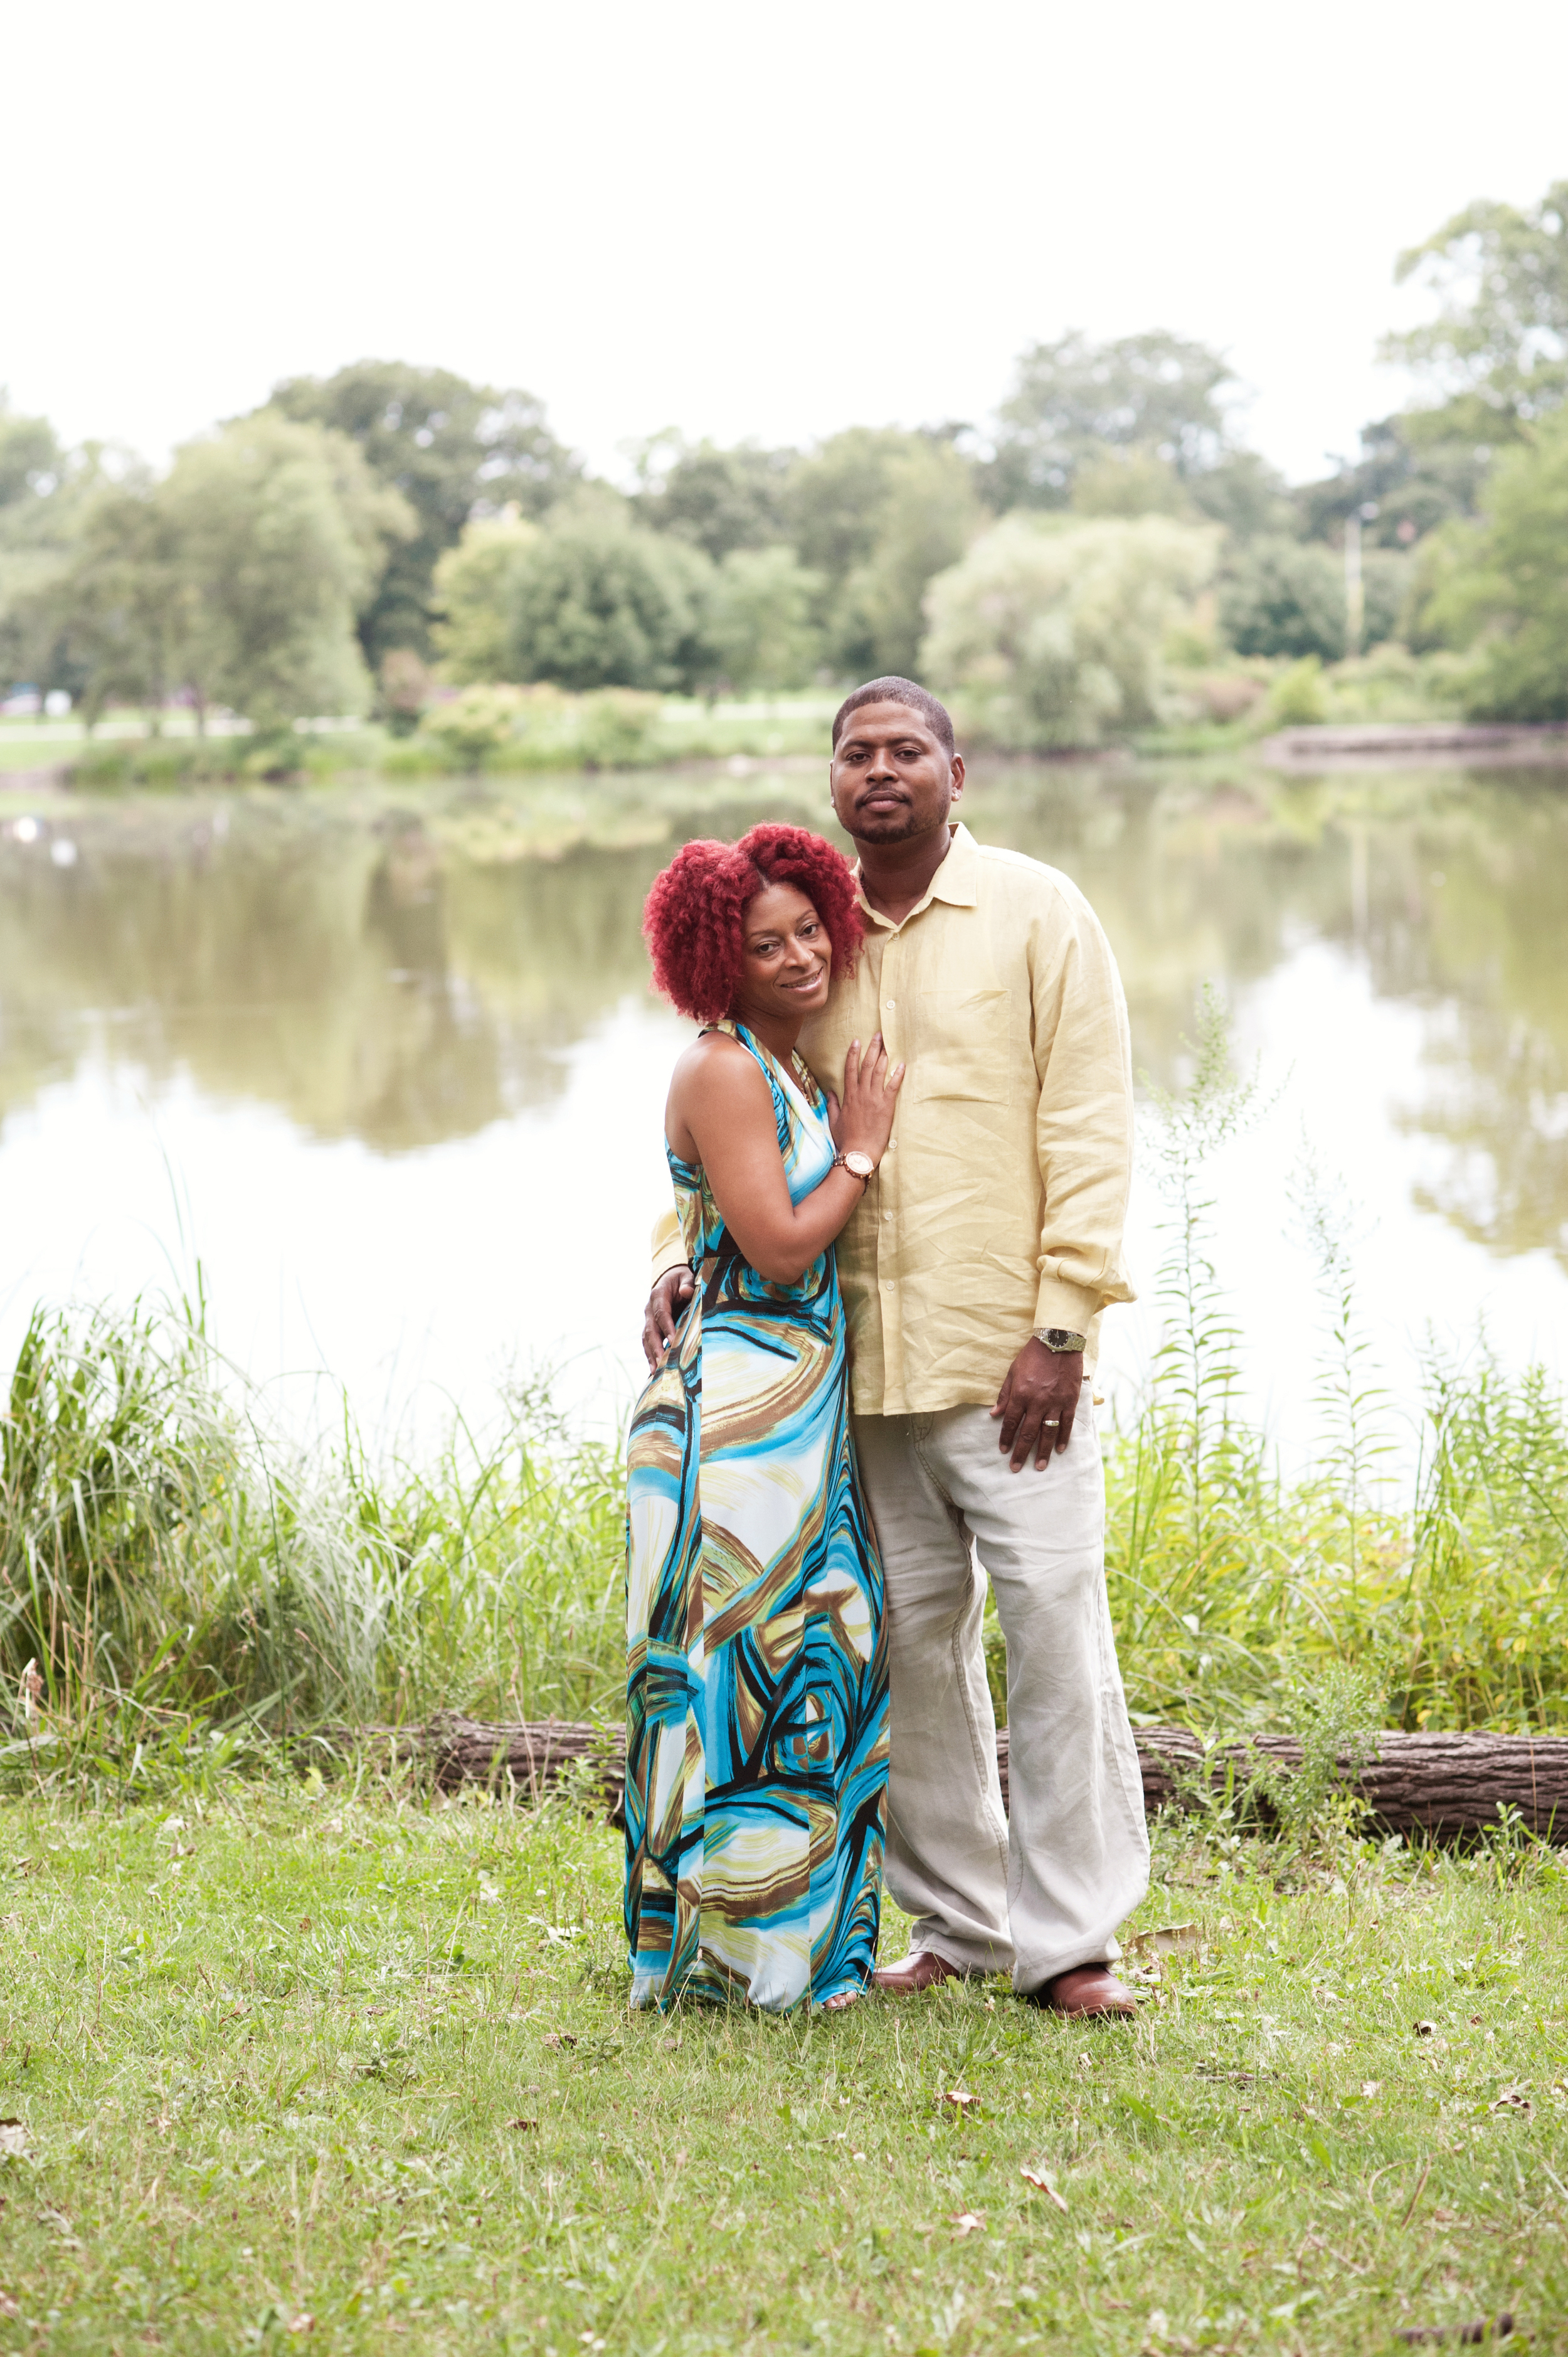 Engagement Portrait | Chicago Small Wedding and Elopement Photographer | Nomee Photography